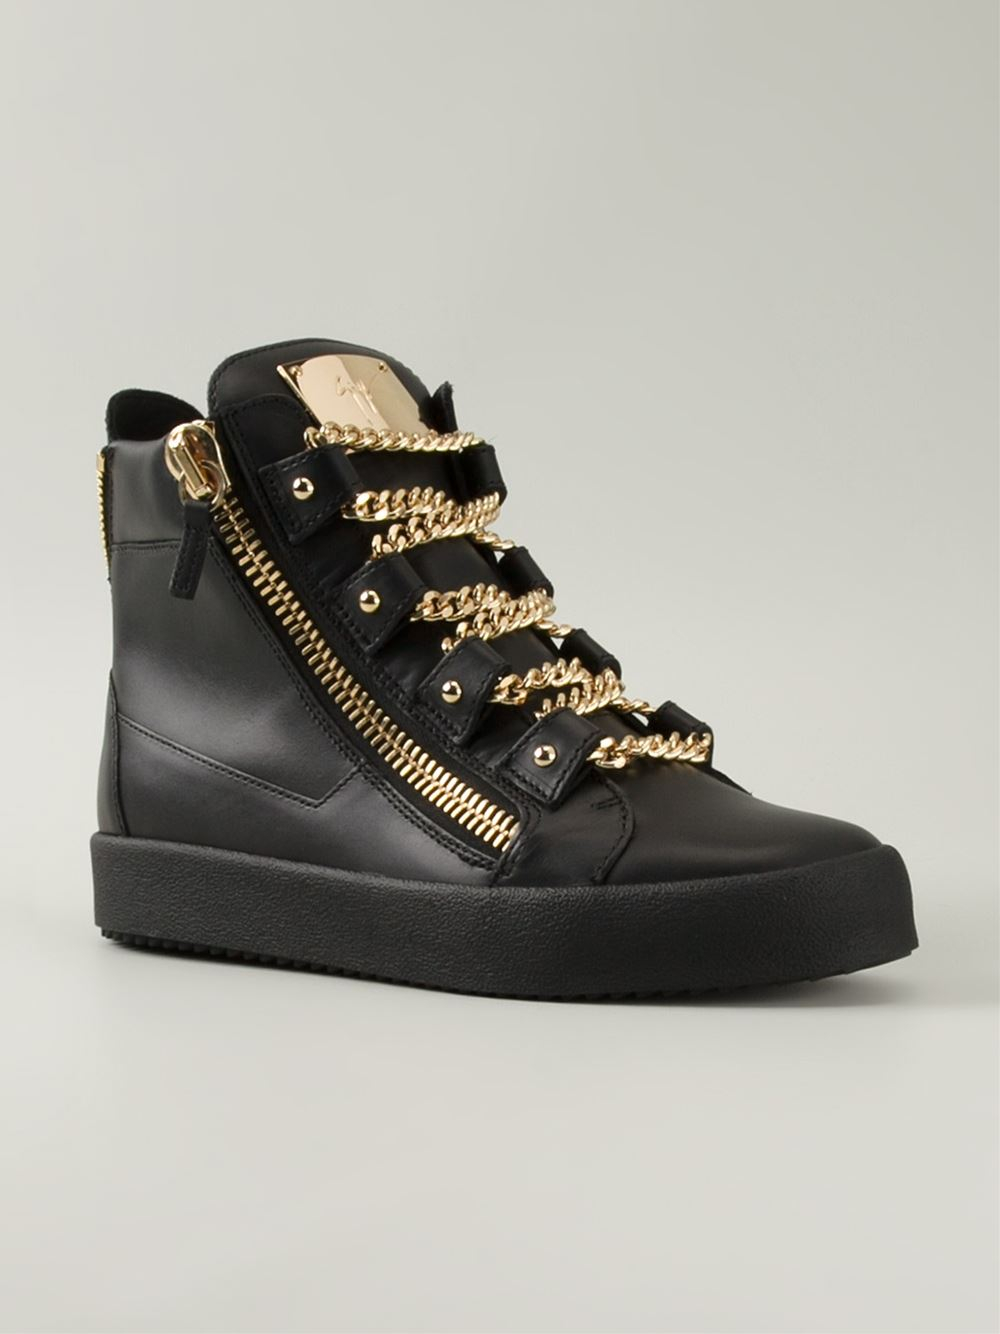 Conception Zanotti Chaussure À Lacets Giuseppe-up owyF2G1UFX